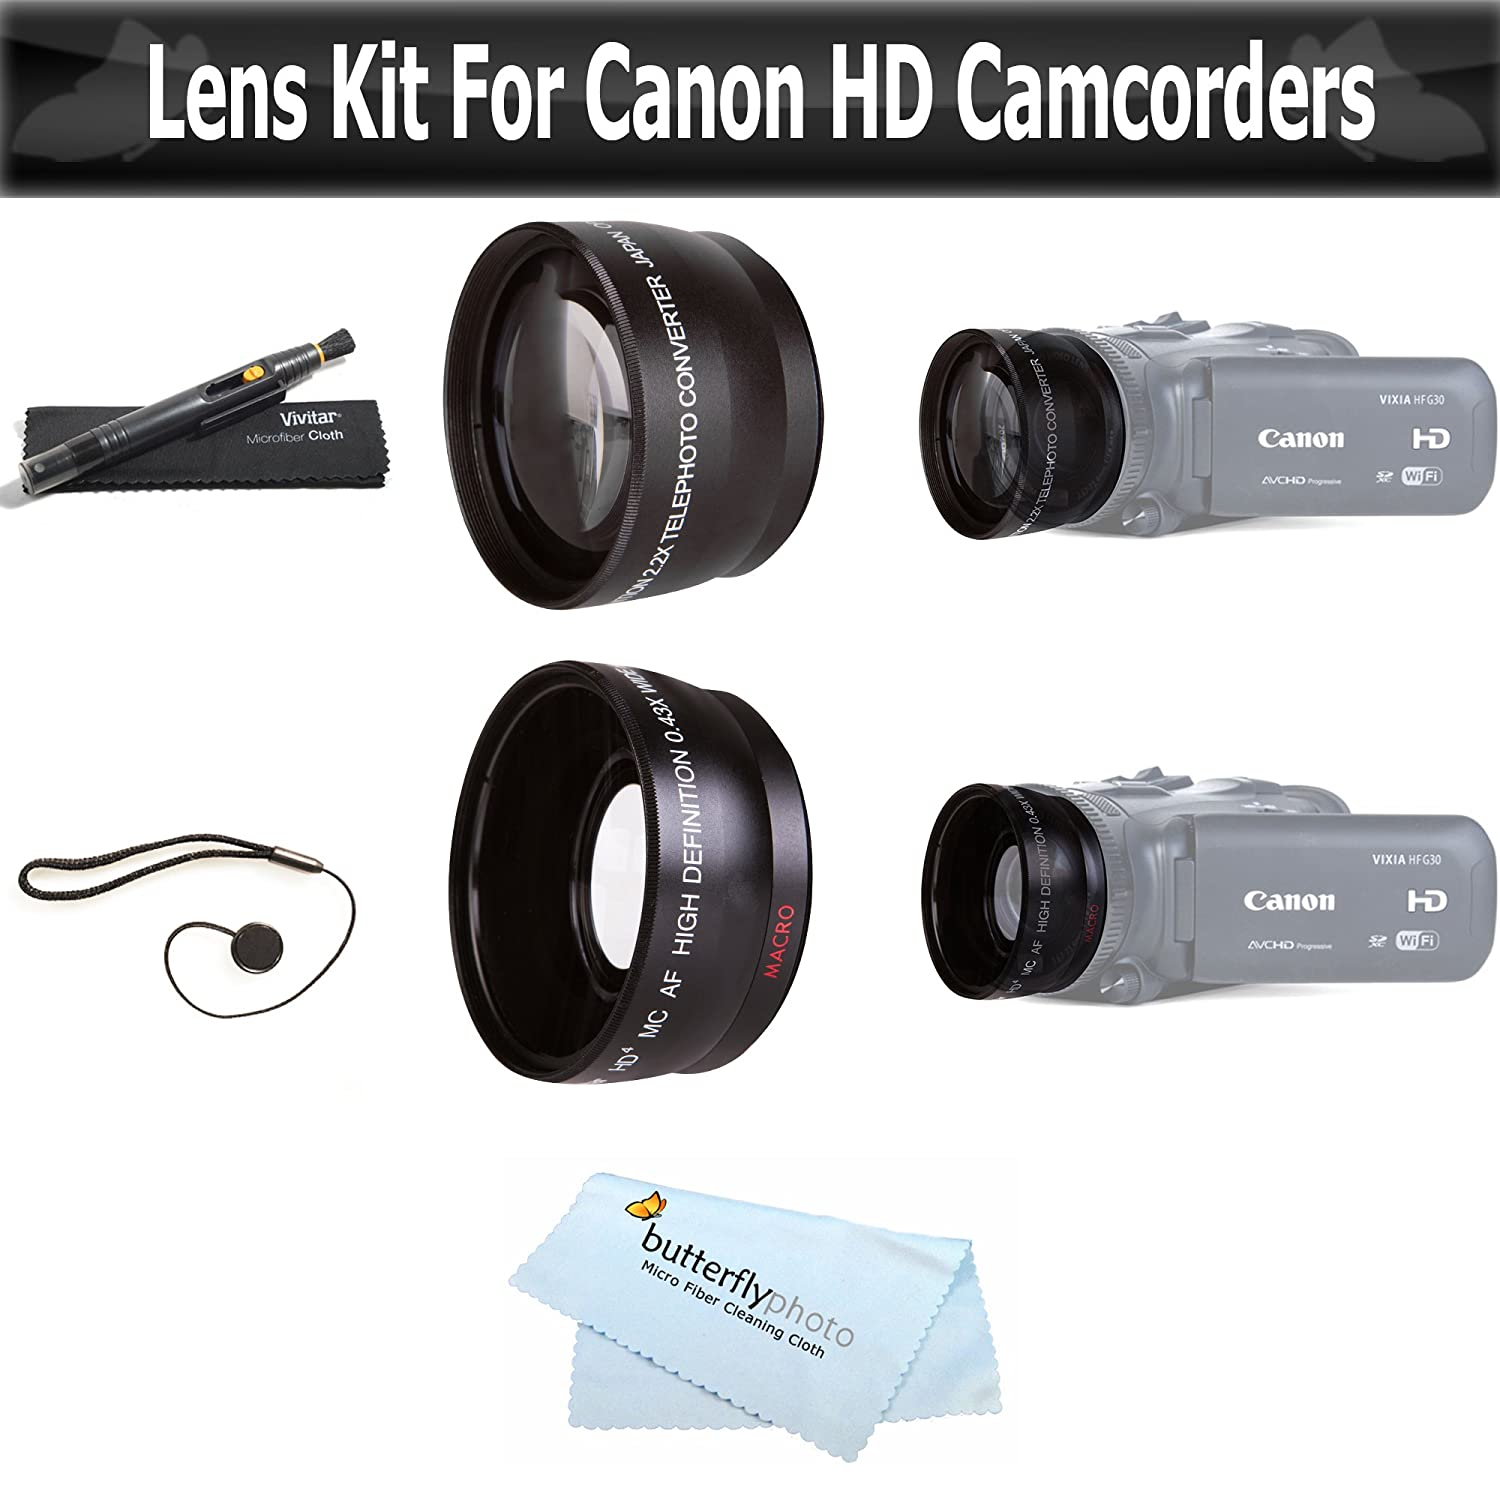 Wide Angle and Telephoto Lens Kit for Canon VIXIA HF R82, HF R80, HF R800, HF R700, HF R72, HF R70 Camcorder Includes .43x Wide Angle Lens + 2.2X Telephoto Lens + Lens Hood + Lens Pen Kit + Much More ButterflyPhoto 4332003104